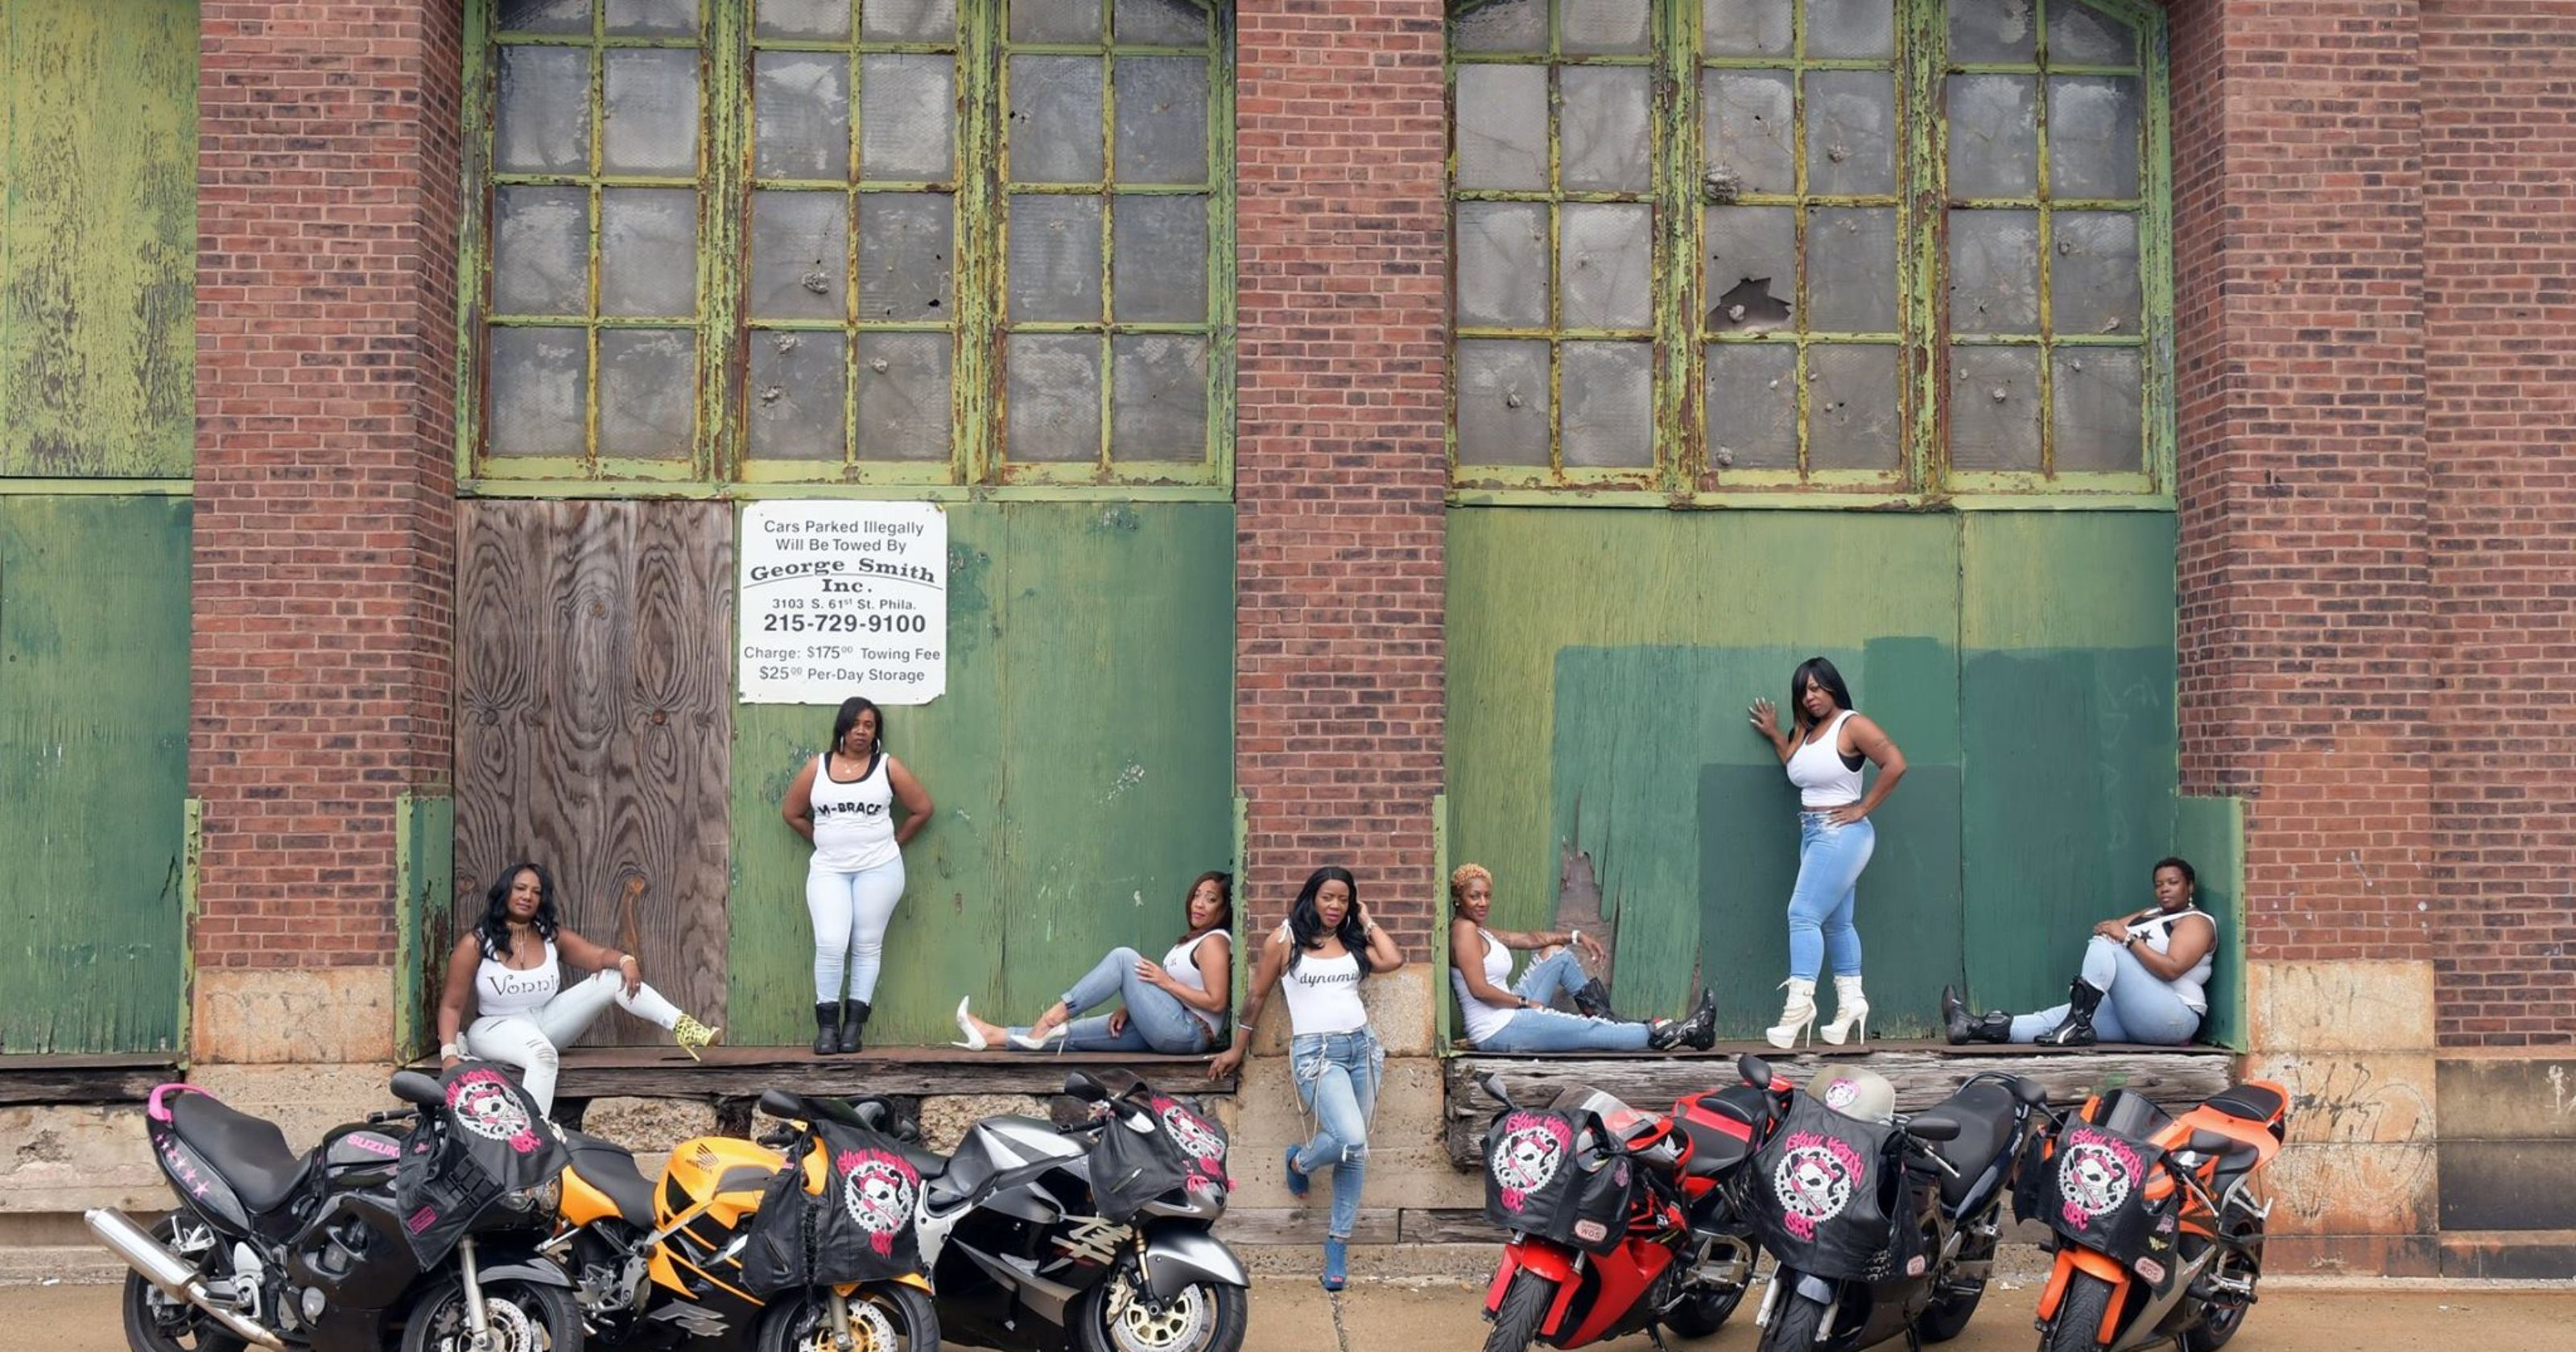 Women help rev up the motorcycle industry image